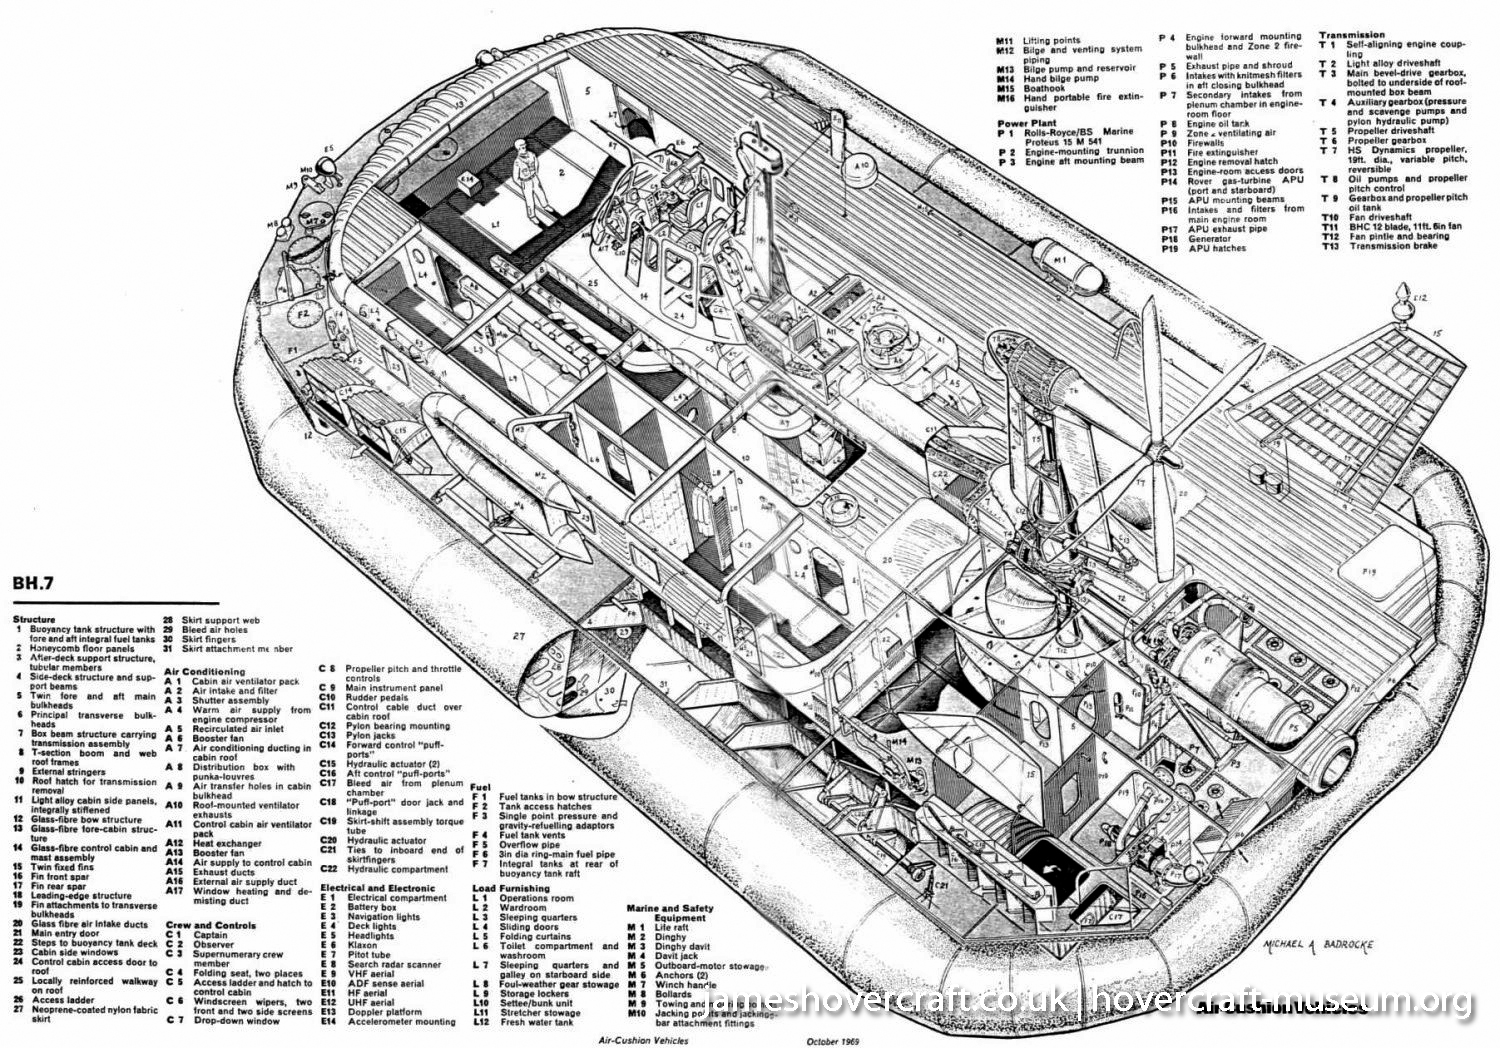 BH7 diagrams -   (The <a href='http://www.hovercraft-museum.org/' target='_blank'>Hovercraft Museum Trust</a>).